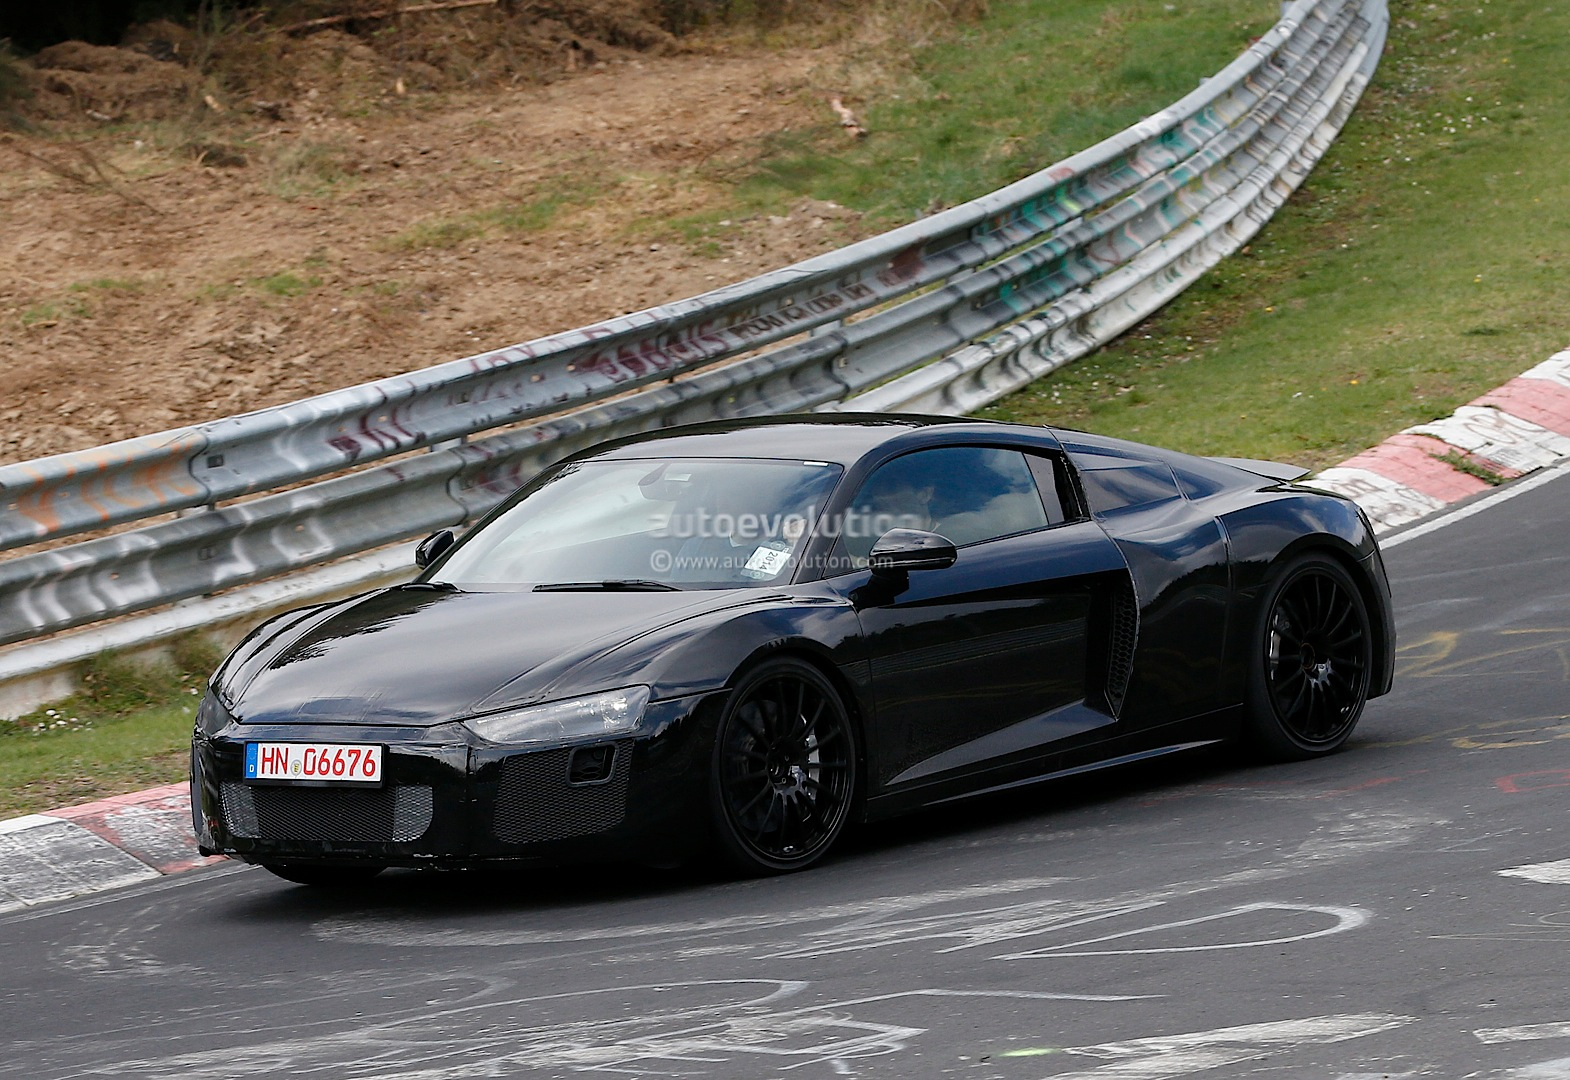 2015 - [Audi] R8 II / R8 II Spider All-new-audi-r8-loses-its-camo-during-latest-nurburgring-tests-photo-gallery_4